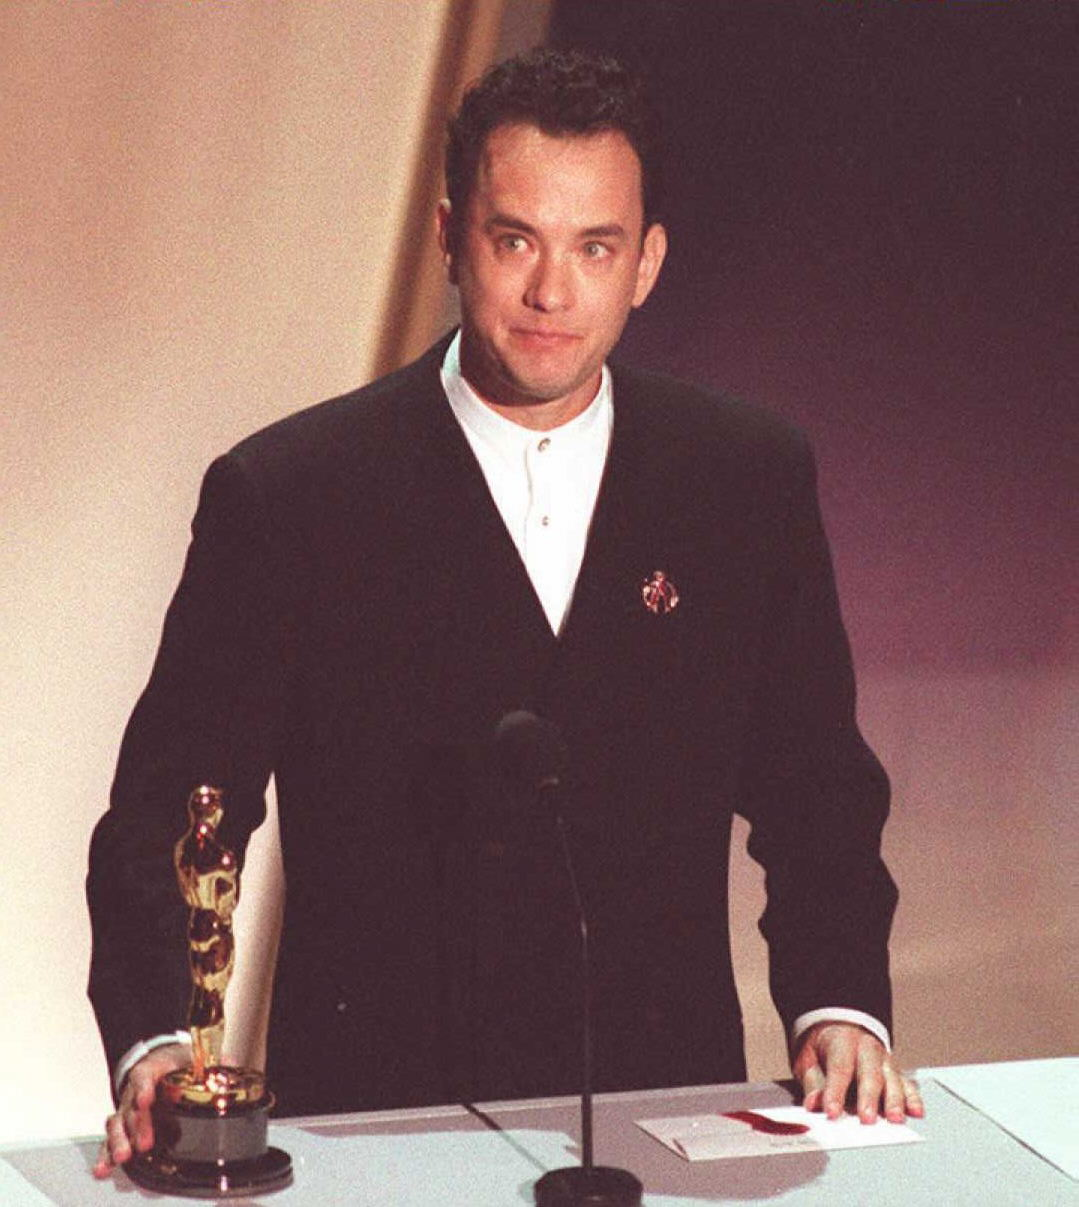 US actor Tom Hanks holds his Oscar 27 March as he speaks to the audience at the 67th annual Academy Awards